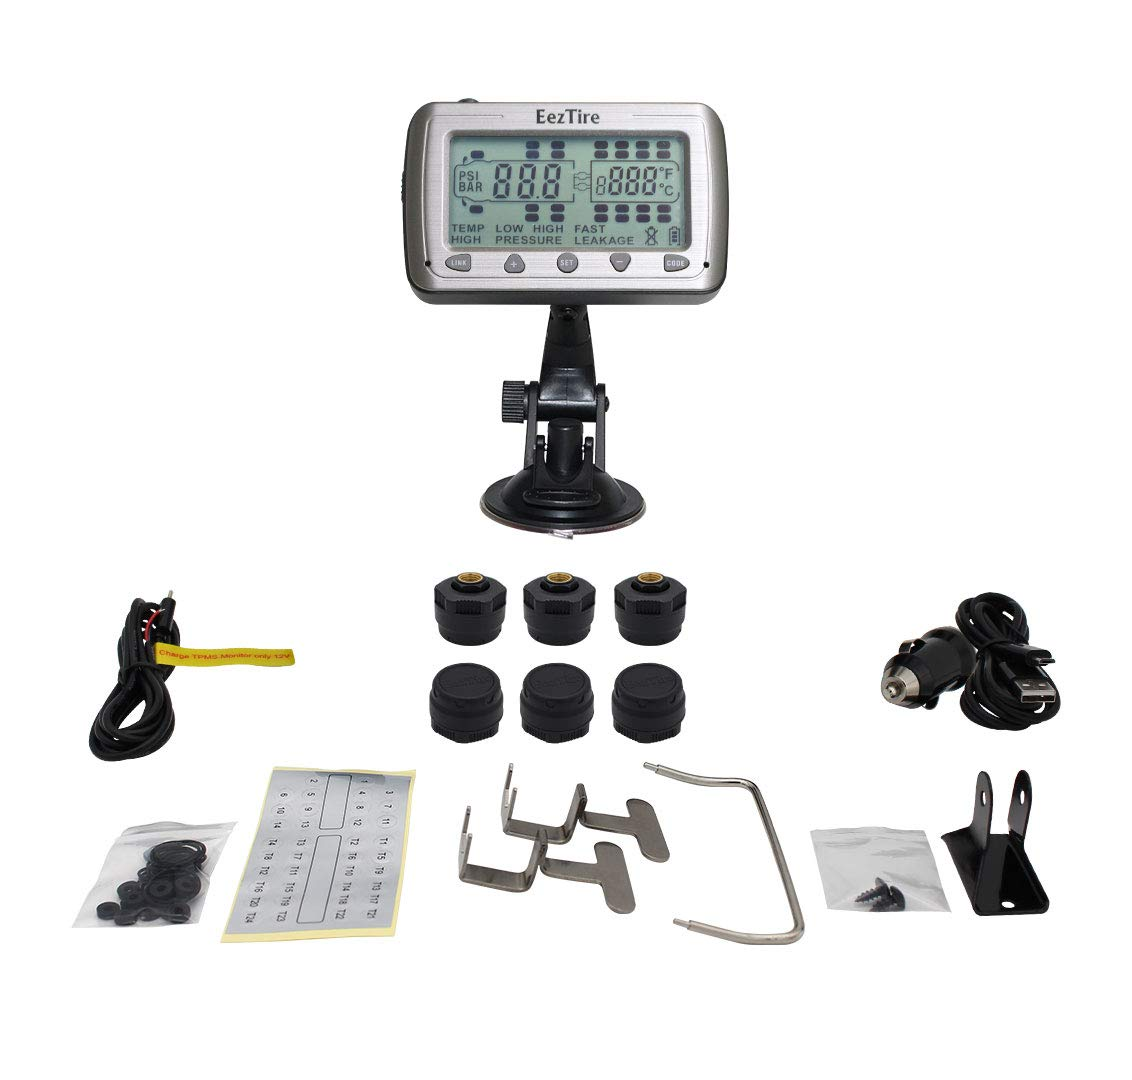 TPMS 10 Sensors EEZTire Tire Pressure Monitoring System